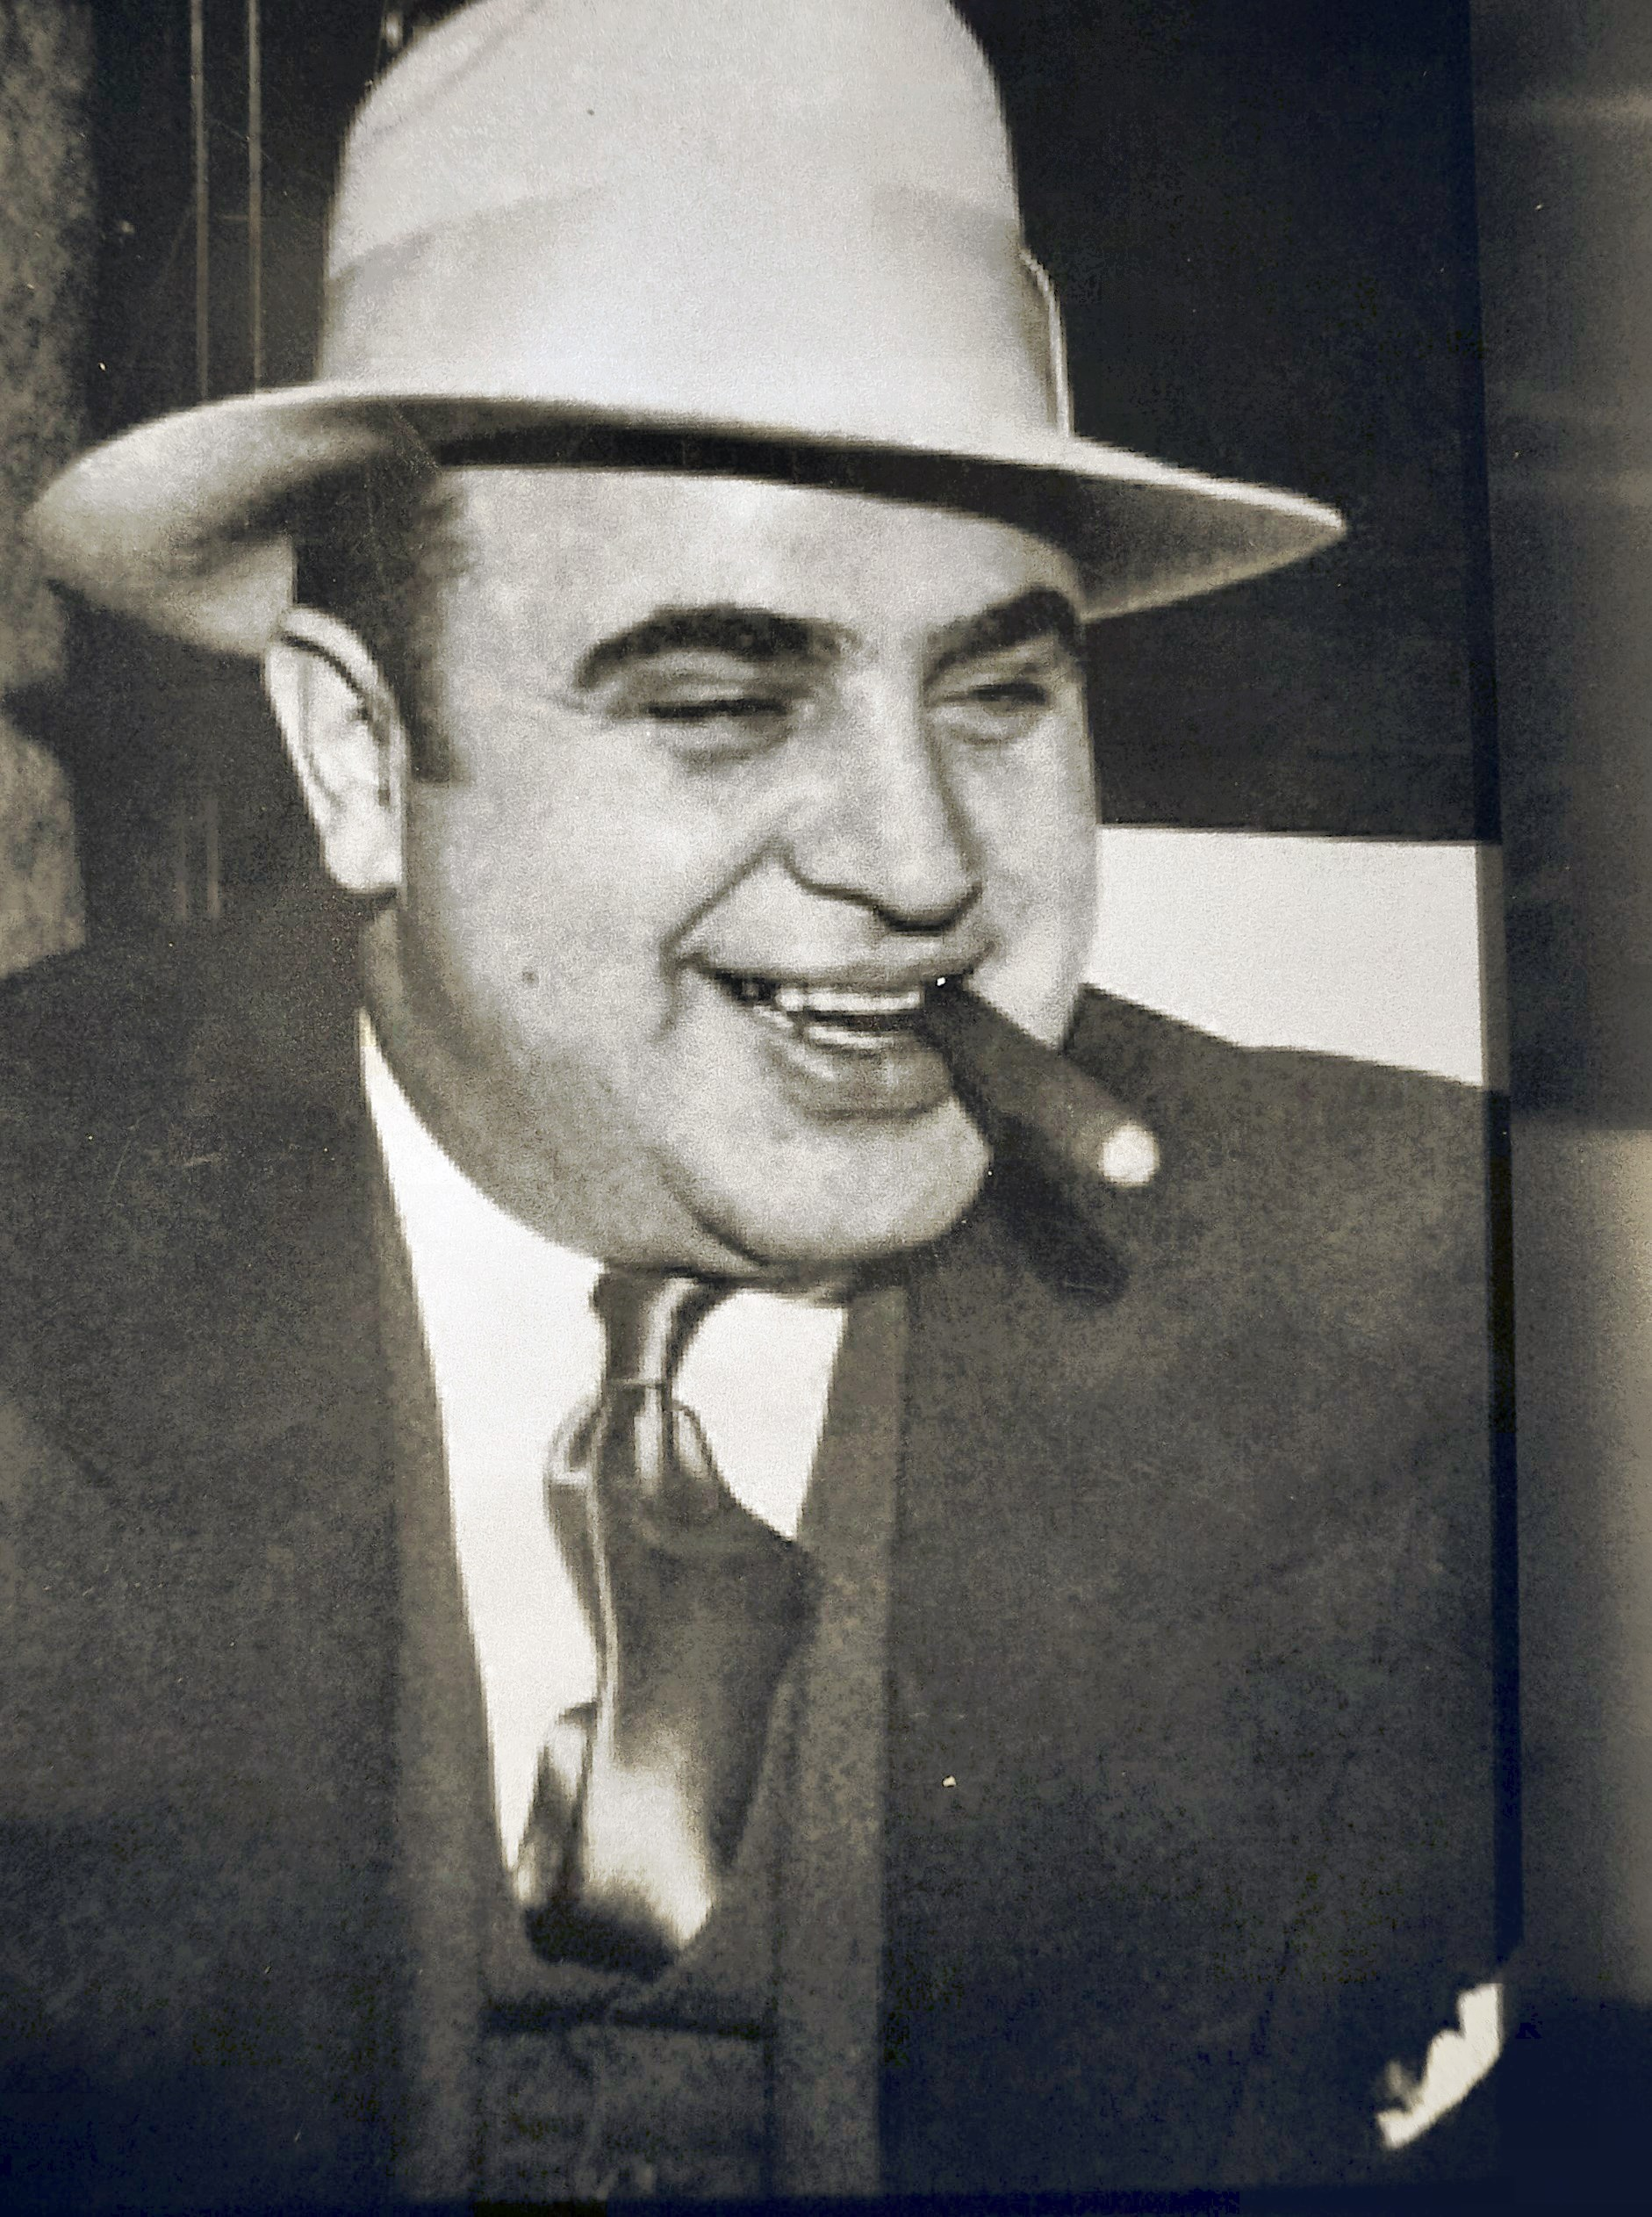 life of al capone Early life edit file:al capone motherjpg alphonse gabriel capone was born in the borough of brooklyn in new york on january 17, 1899 his parents, gabriele (december 12, 1864 - november 14, 1920) and teresina capone (december 28, 1867 - november 29, 1952), were immigrants from italy.